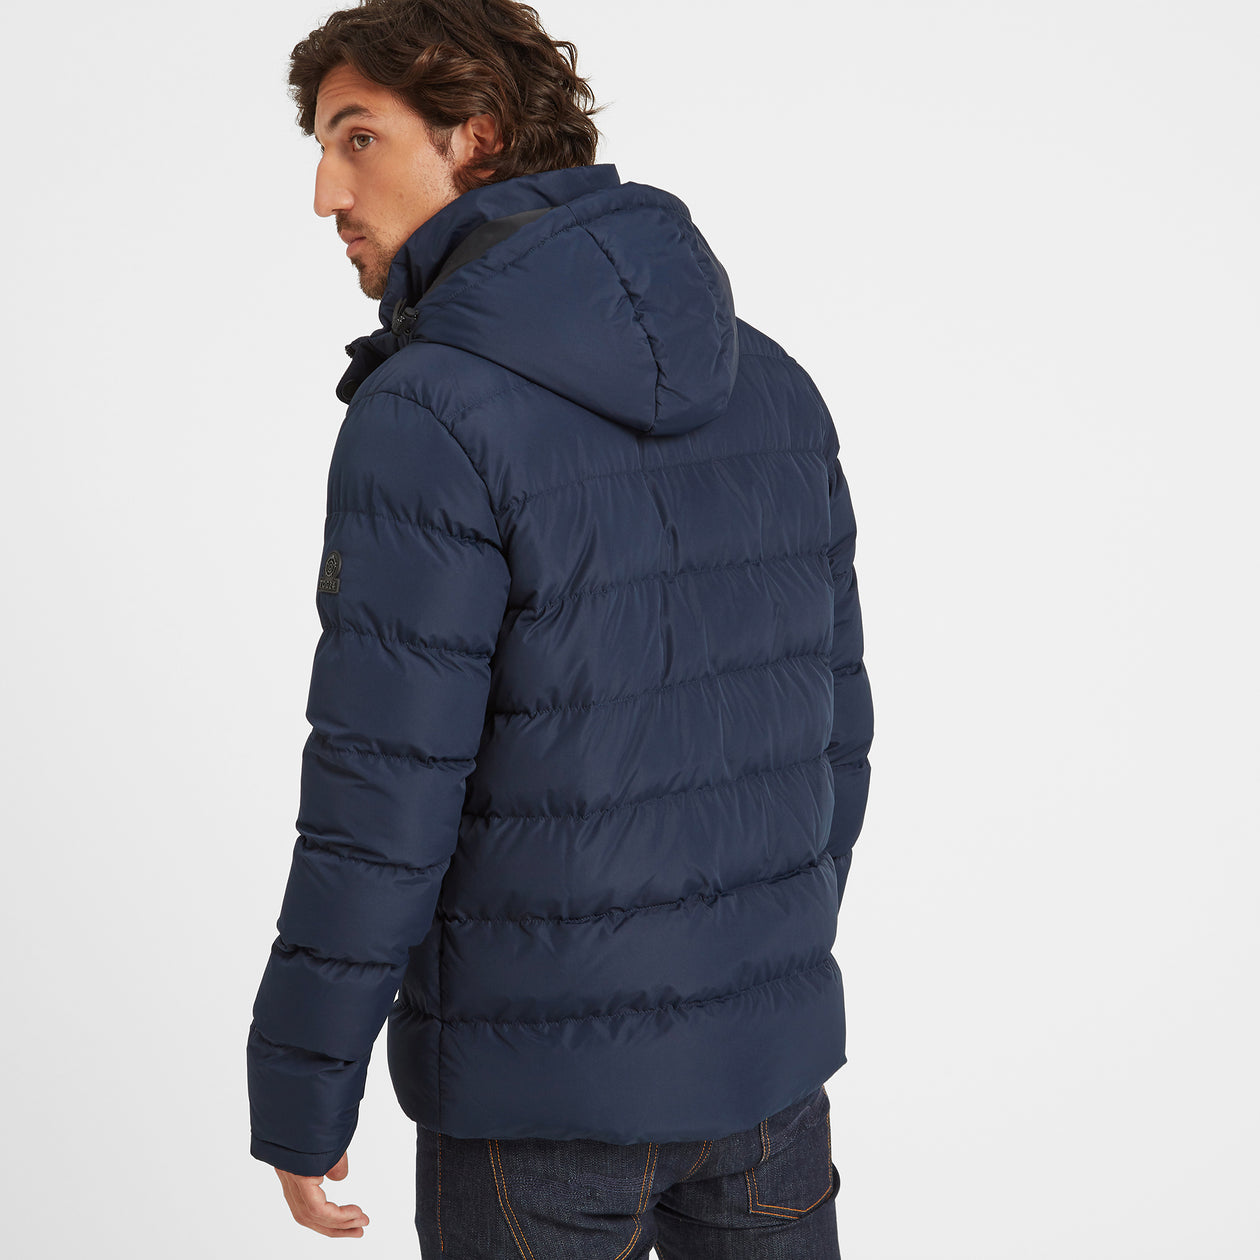 Hexham Mens Long Insulated Jacket - Navy image 4